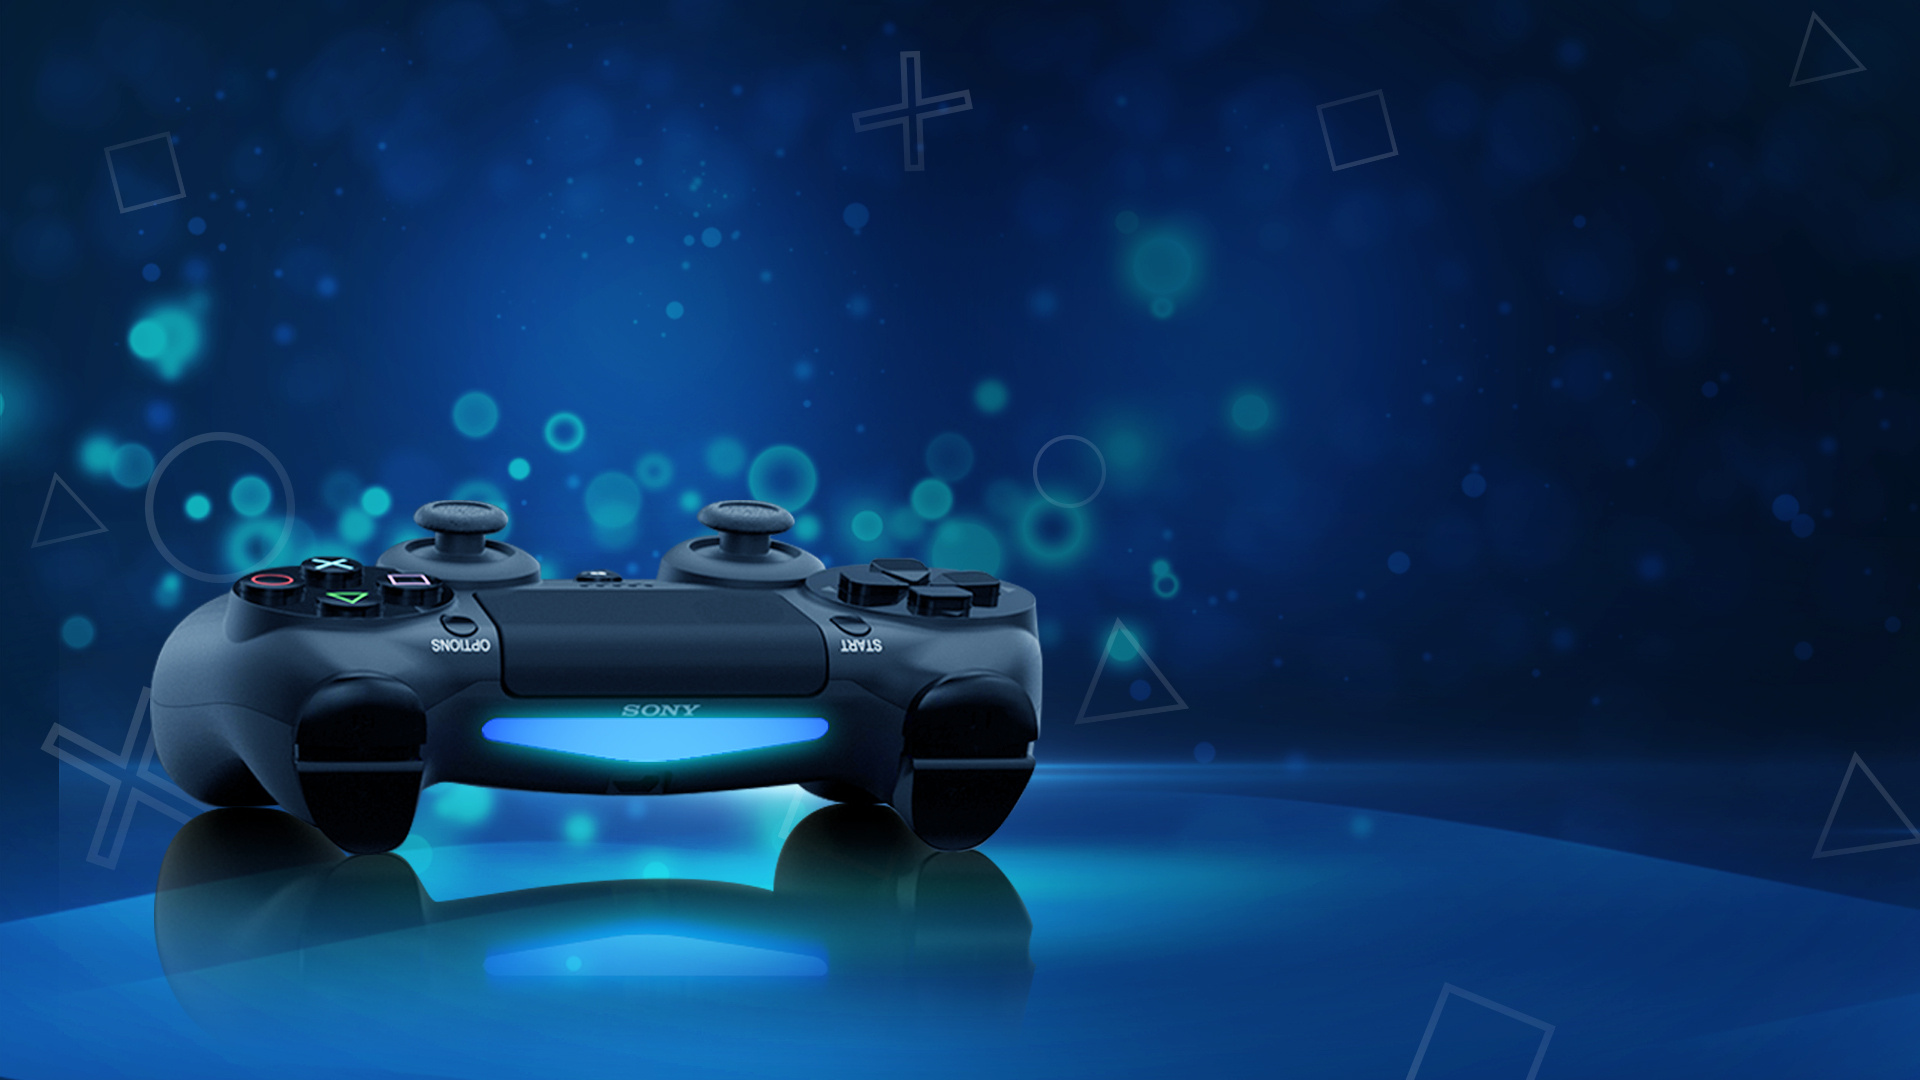 Sony Set to Debut New PlayStation 'State of Play' Video Showcase